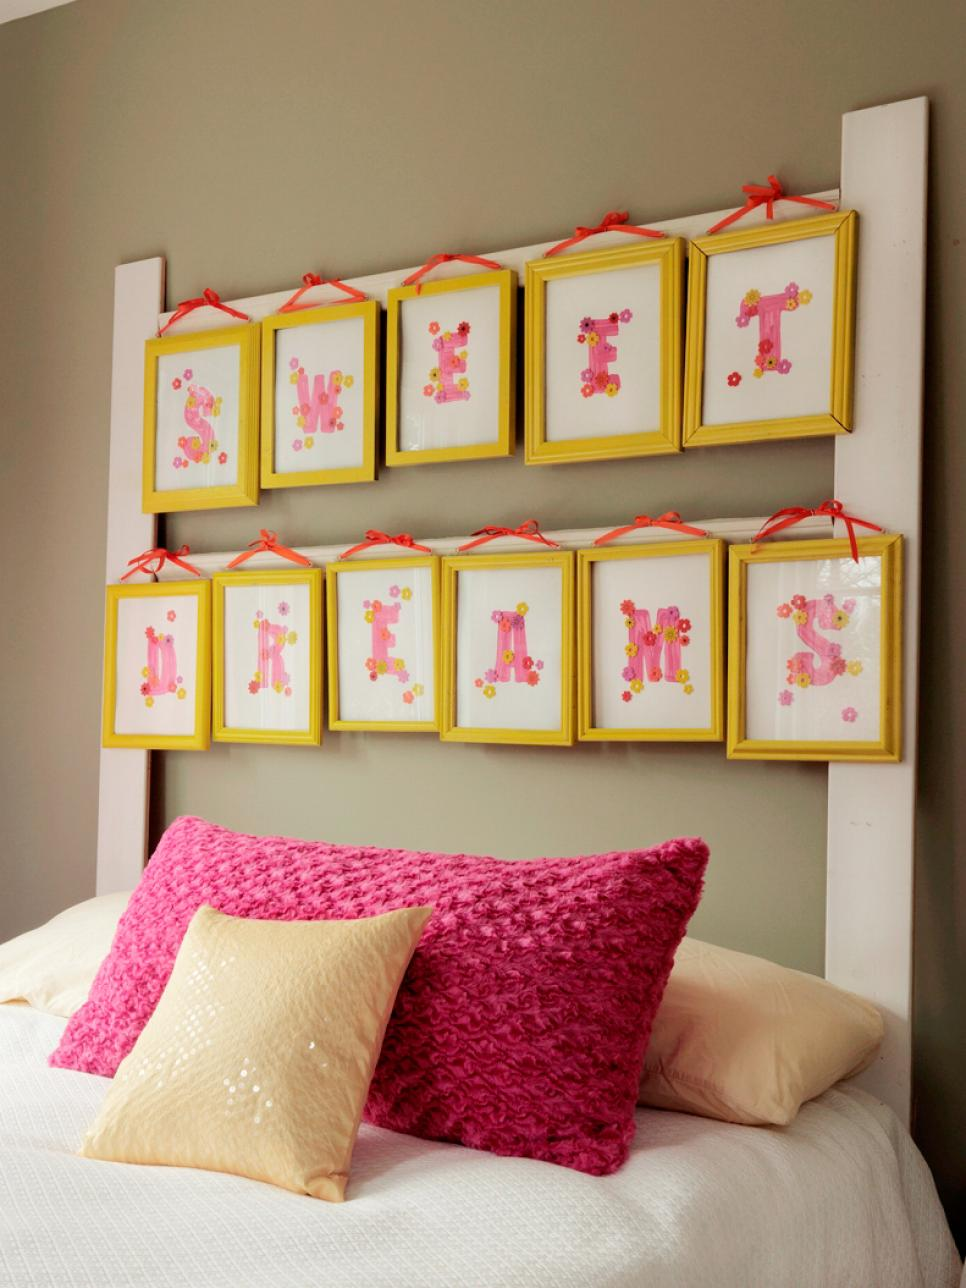 diy-headboard-ideas-1